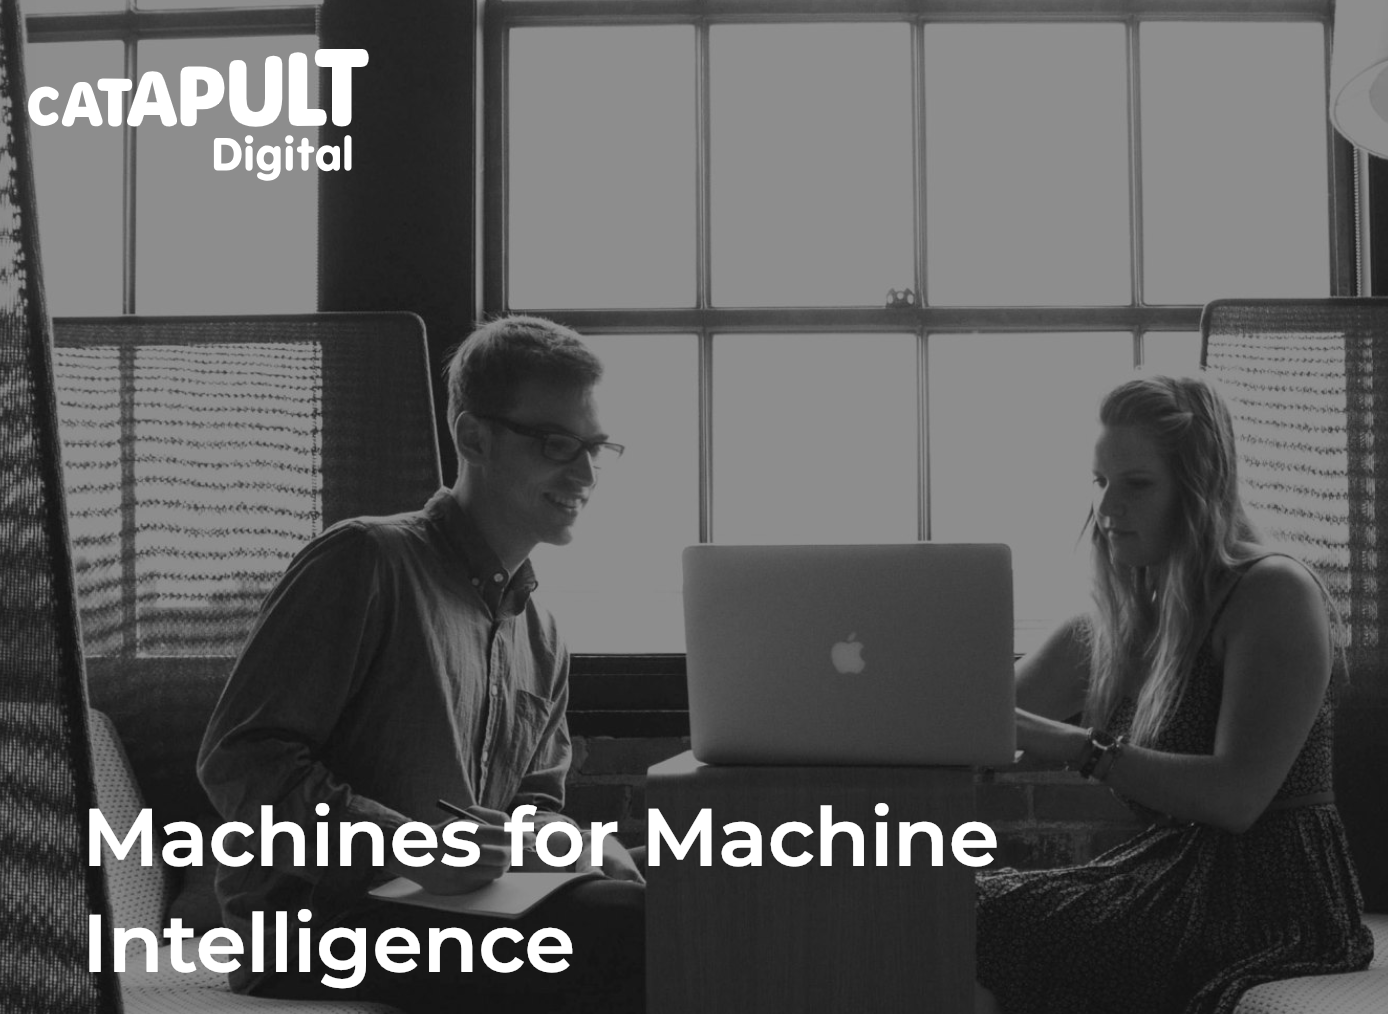 Digital Catapult - Machine Intelligence Garage